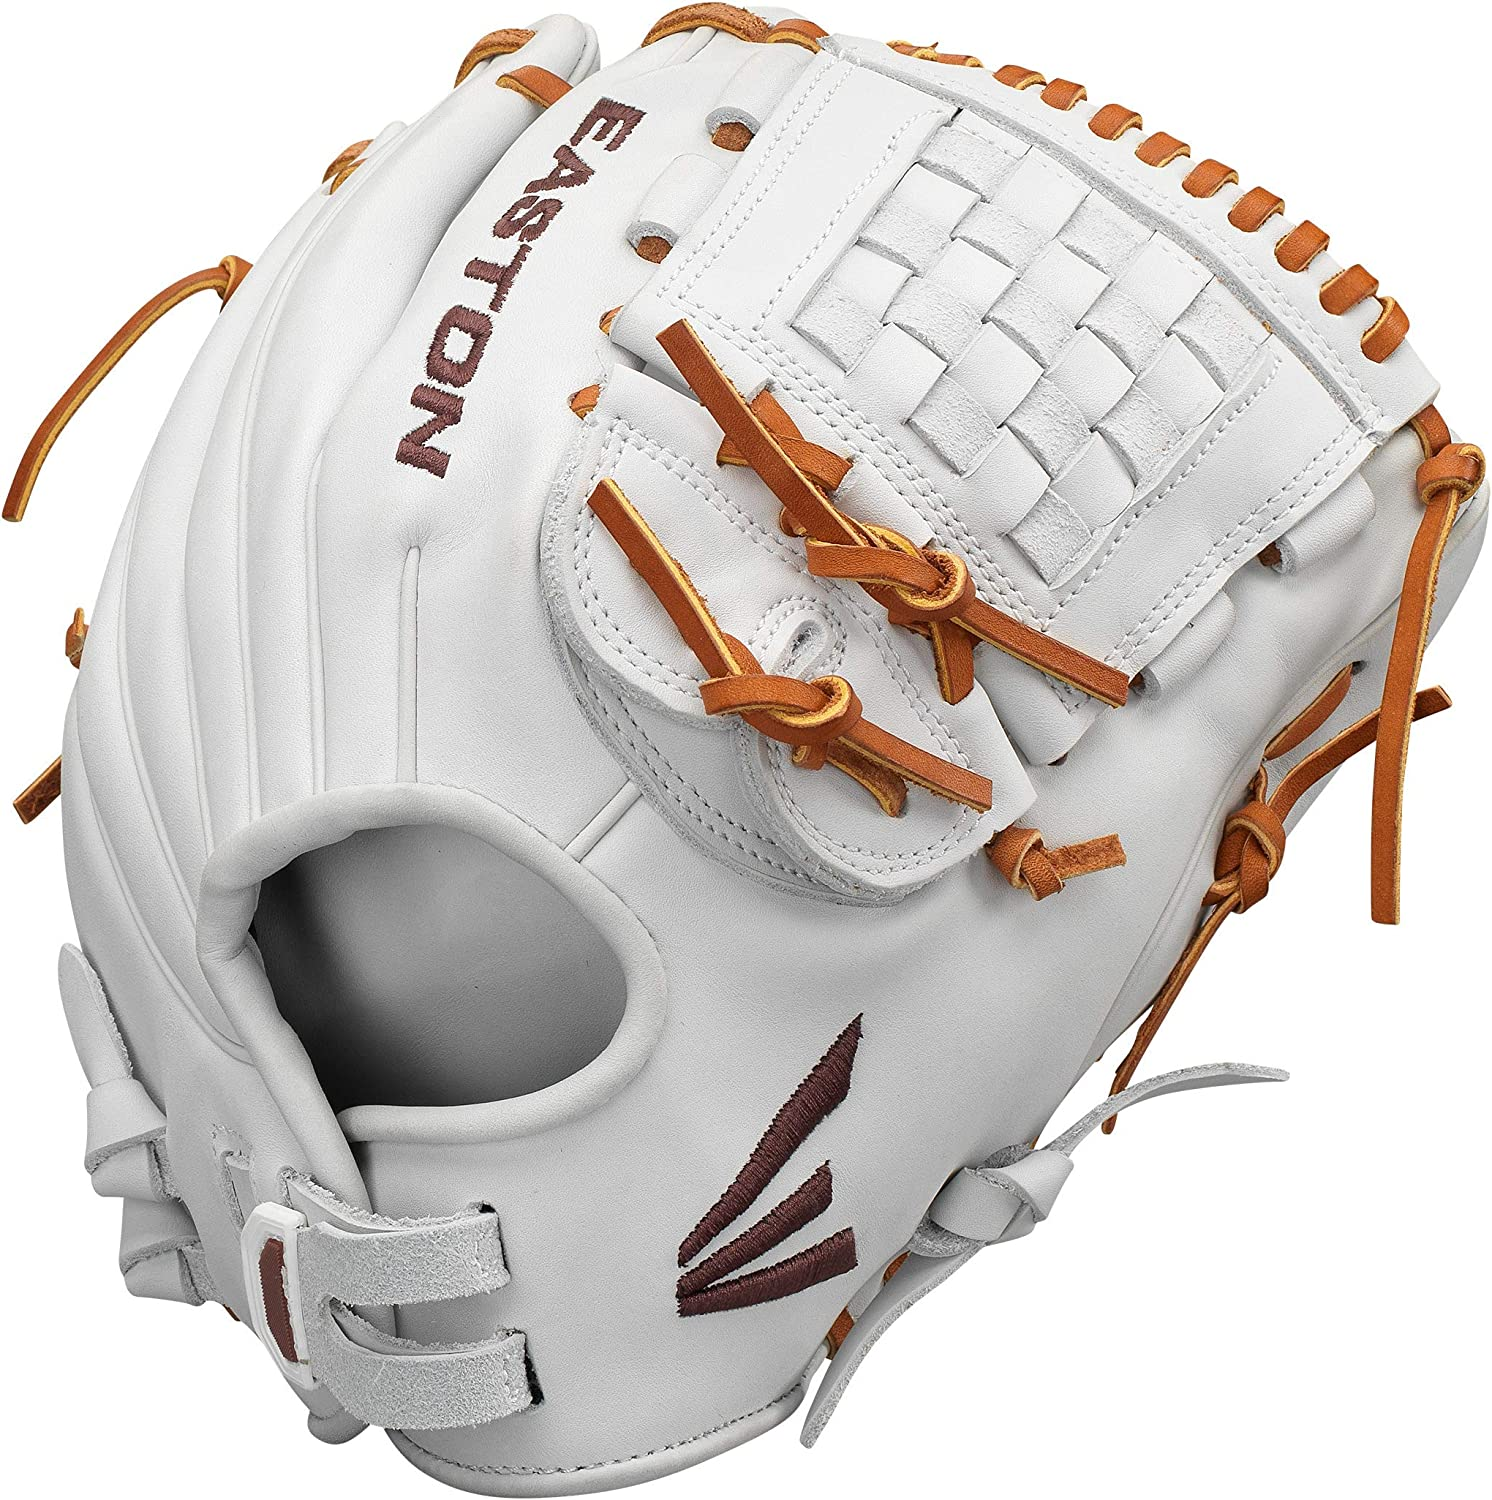 Female Athlete Design Quantum Closer System for Customized Fit And Feel Full Leather Lining EASTON PROFESSIONAL Fastpitch Softball Glove Series Premium Reserve USA Steer Hide Leather